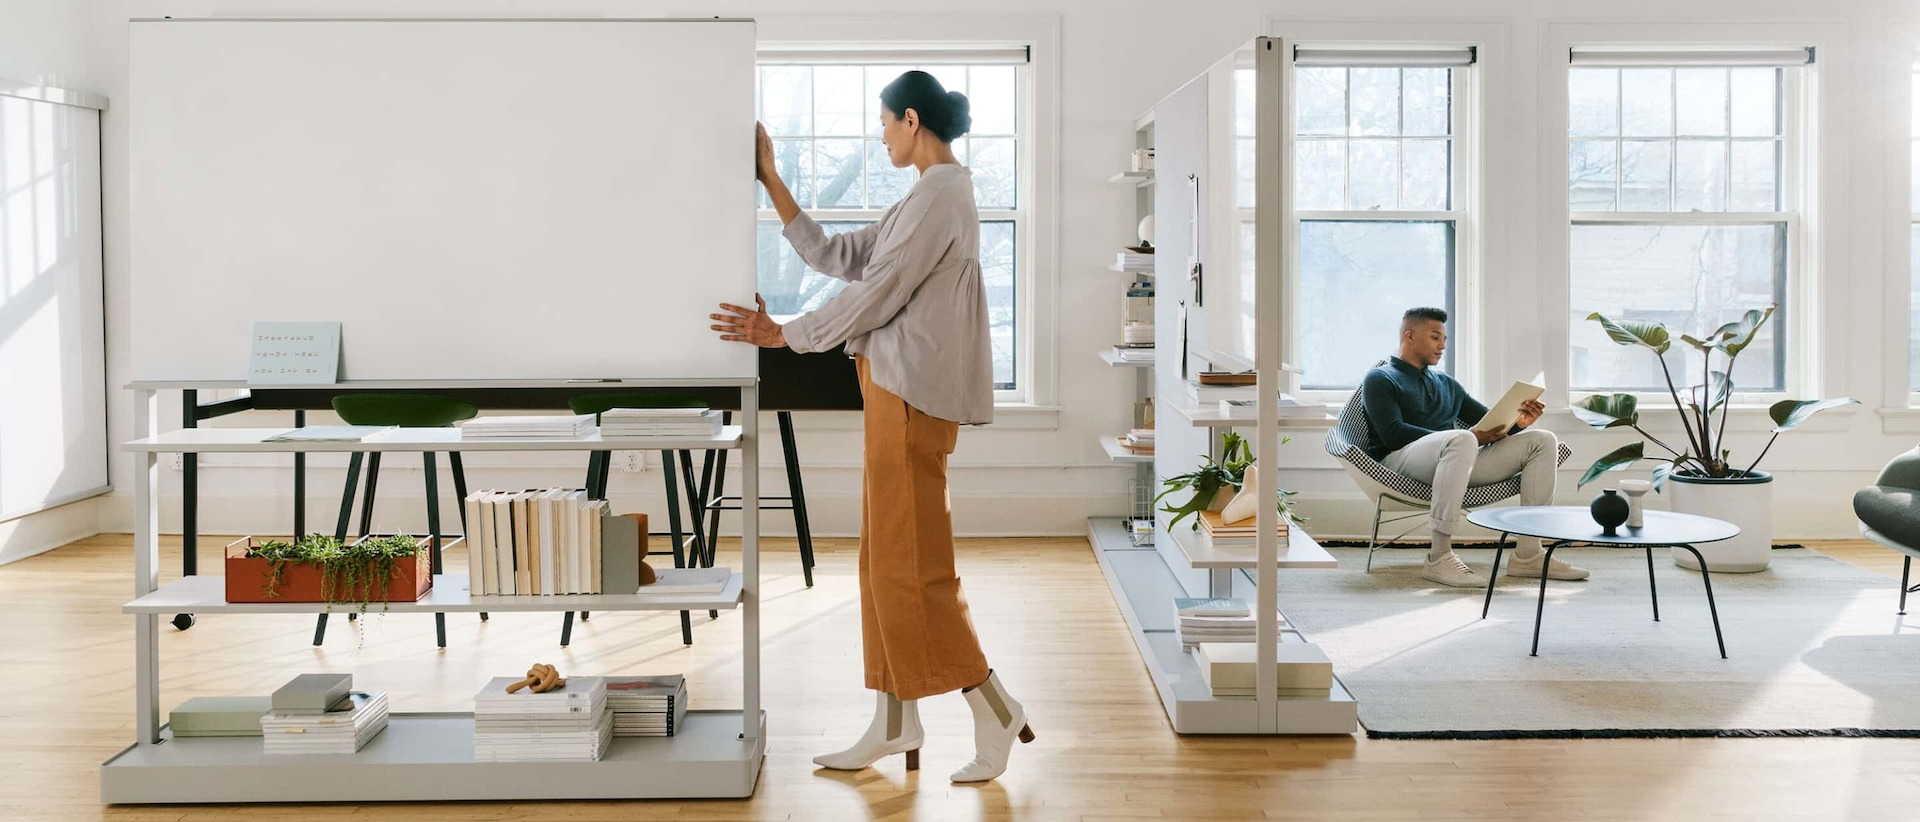 Workers rearranging the new Herman Miller OE1 collection for their work needs